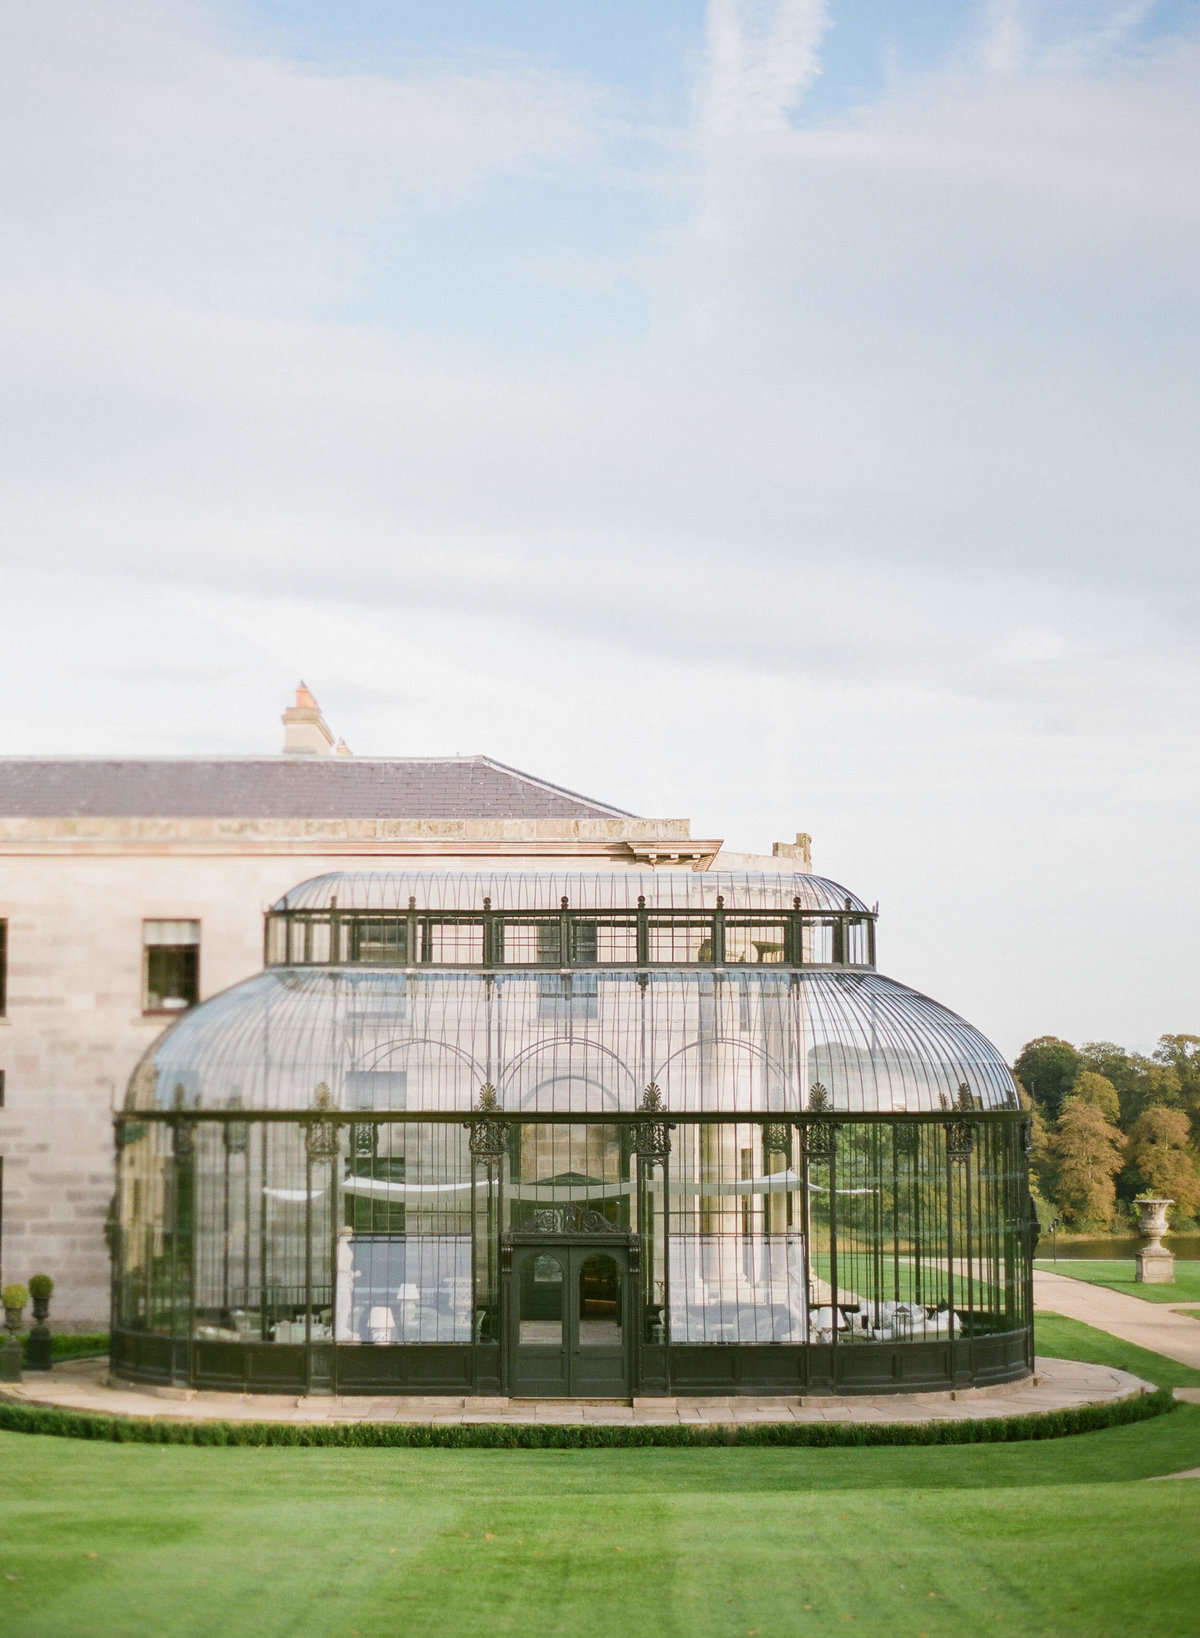 49-KTMerry-destination-weddings-Ballyfin-greenhouse-Ireland